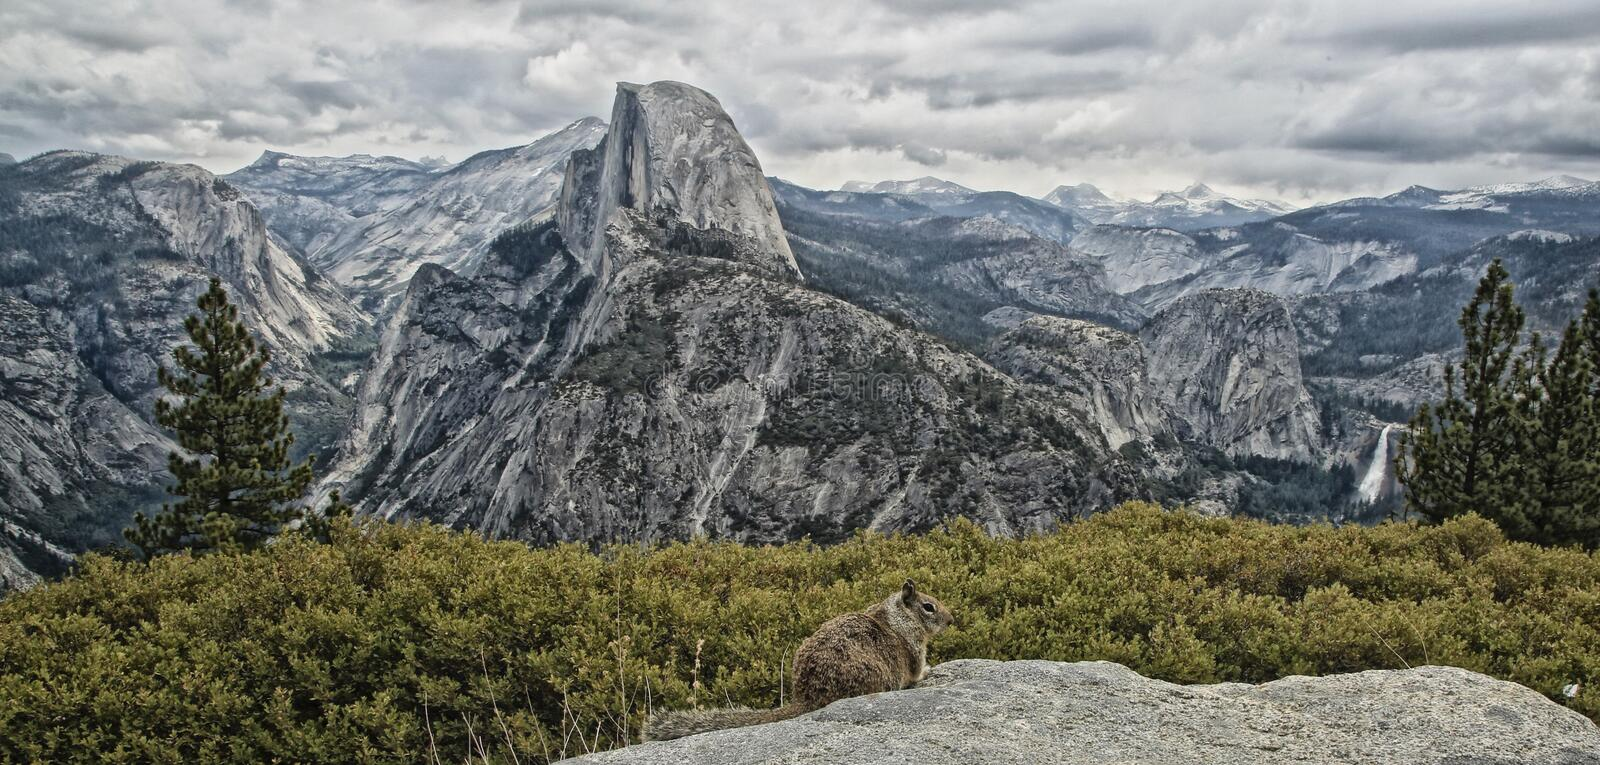 Half Dome Yosemite National Park California royalty free stock photo